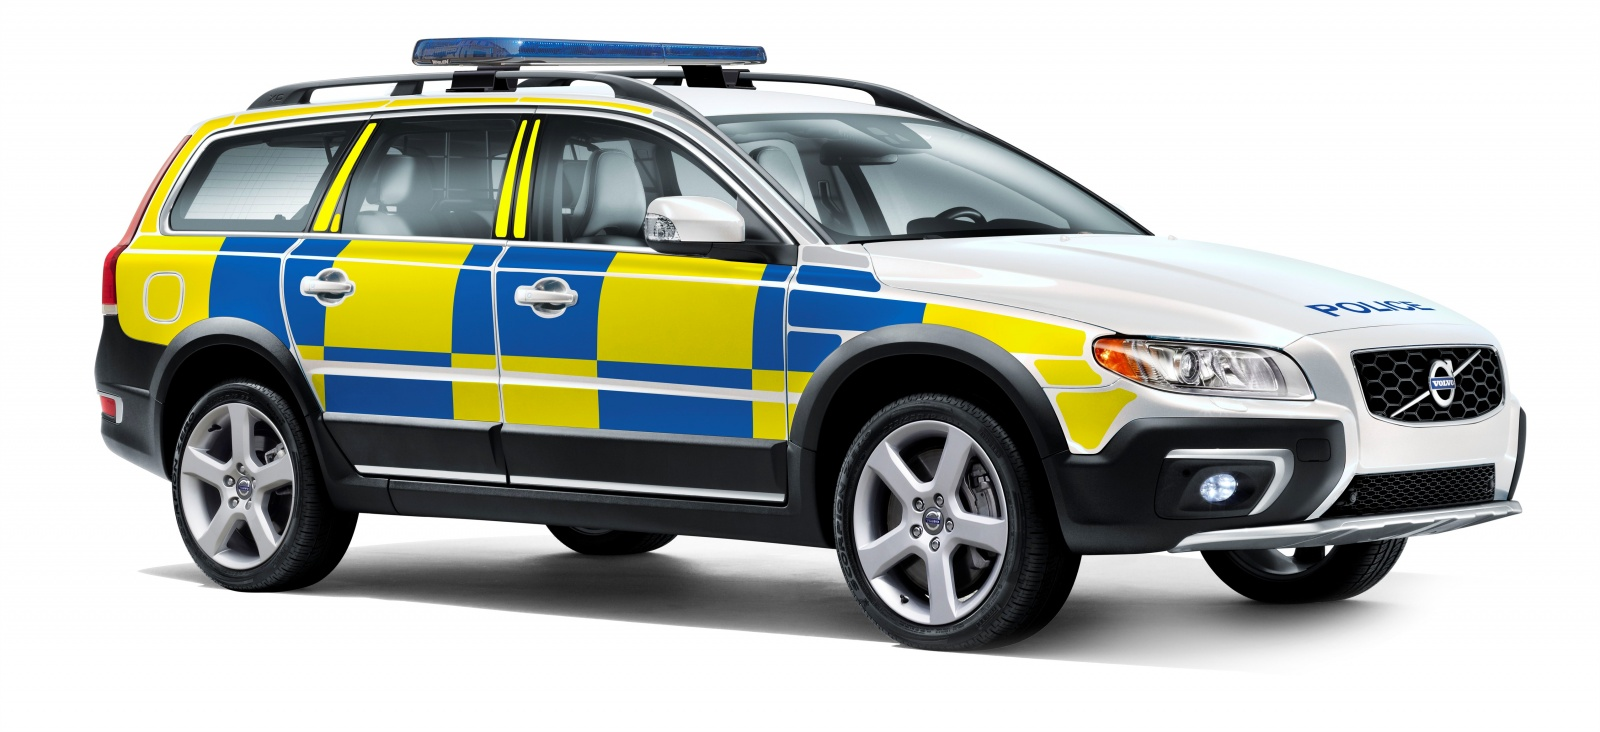 British police car clipart jpg library stock Uk police car clipart - ClipartFest jpg library stock